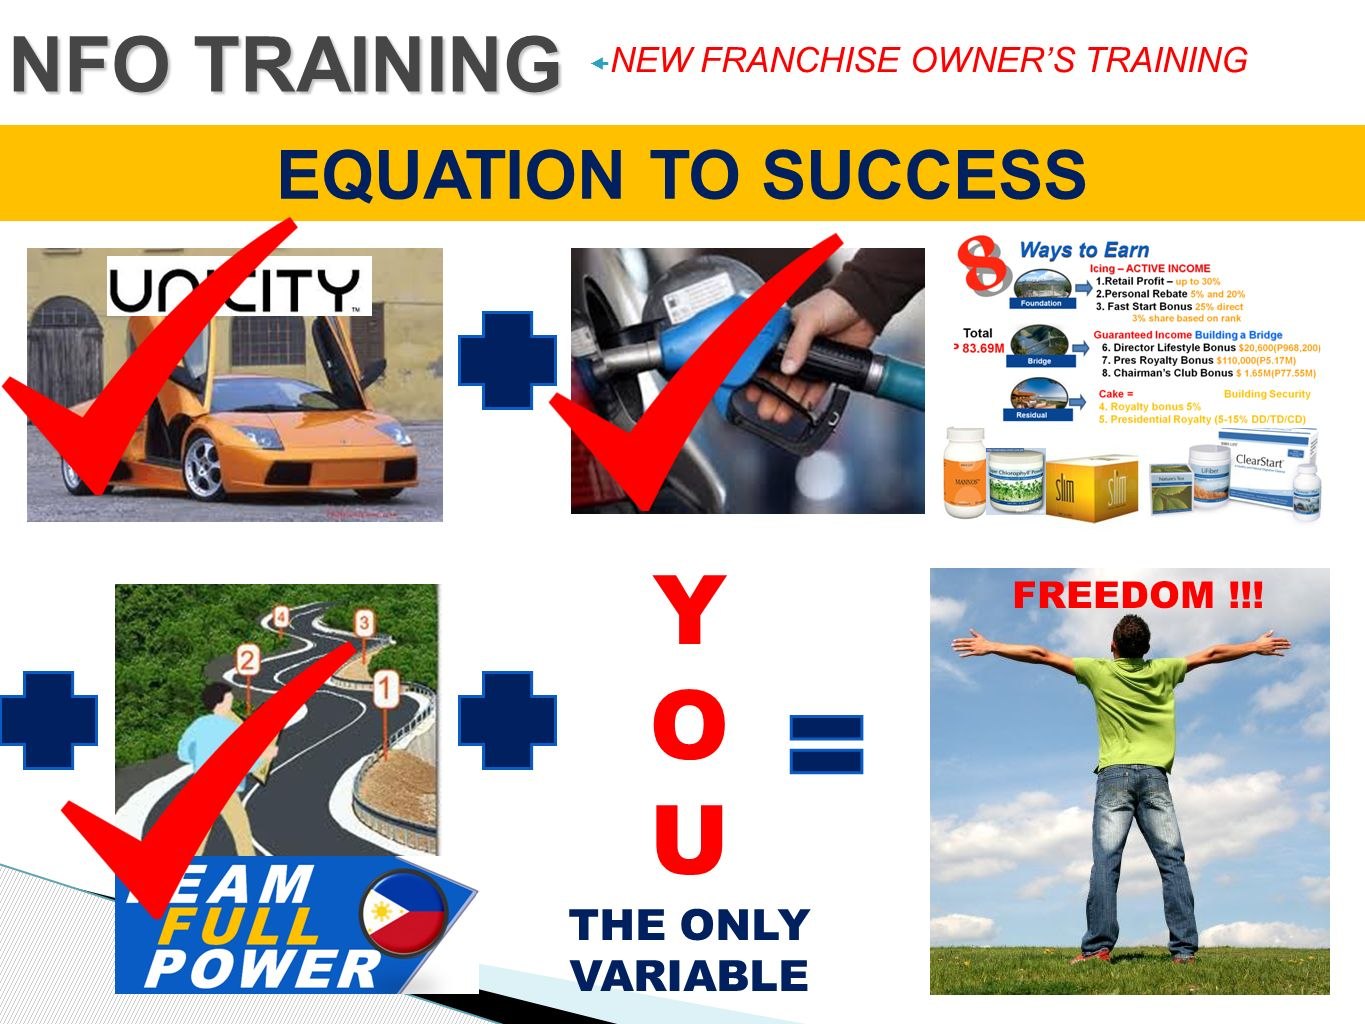 NFO TRAINING NEW FRANCHISE OWNERS TRAINING EQUATION TO SUCCESS Y O U THE ONLY VARIABLE FREEDOM !!!